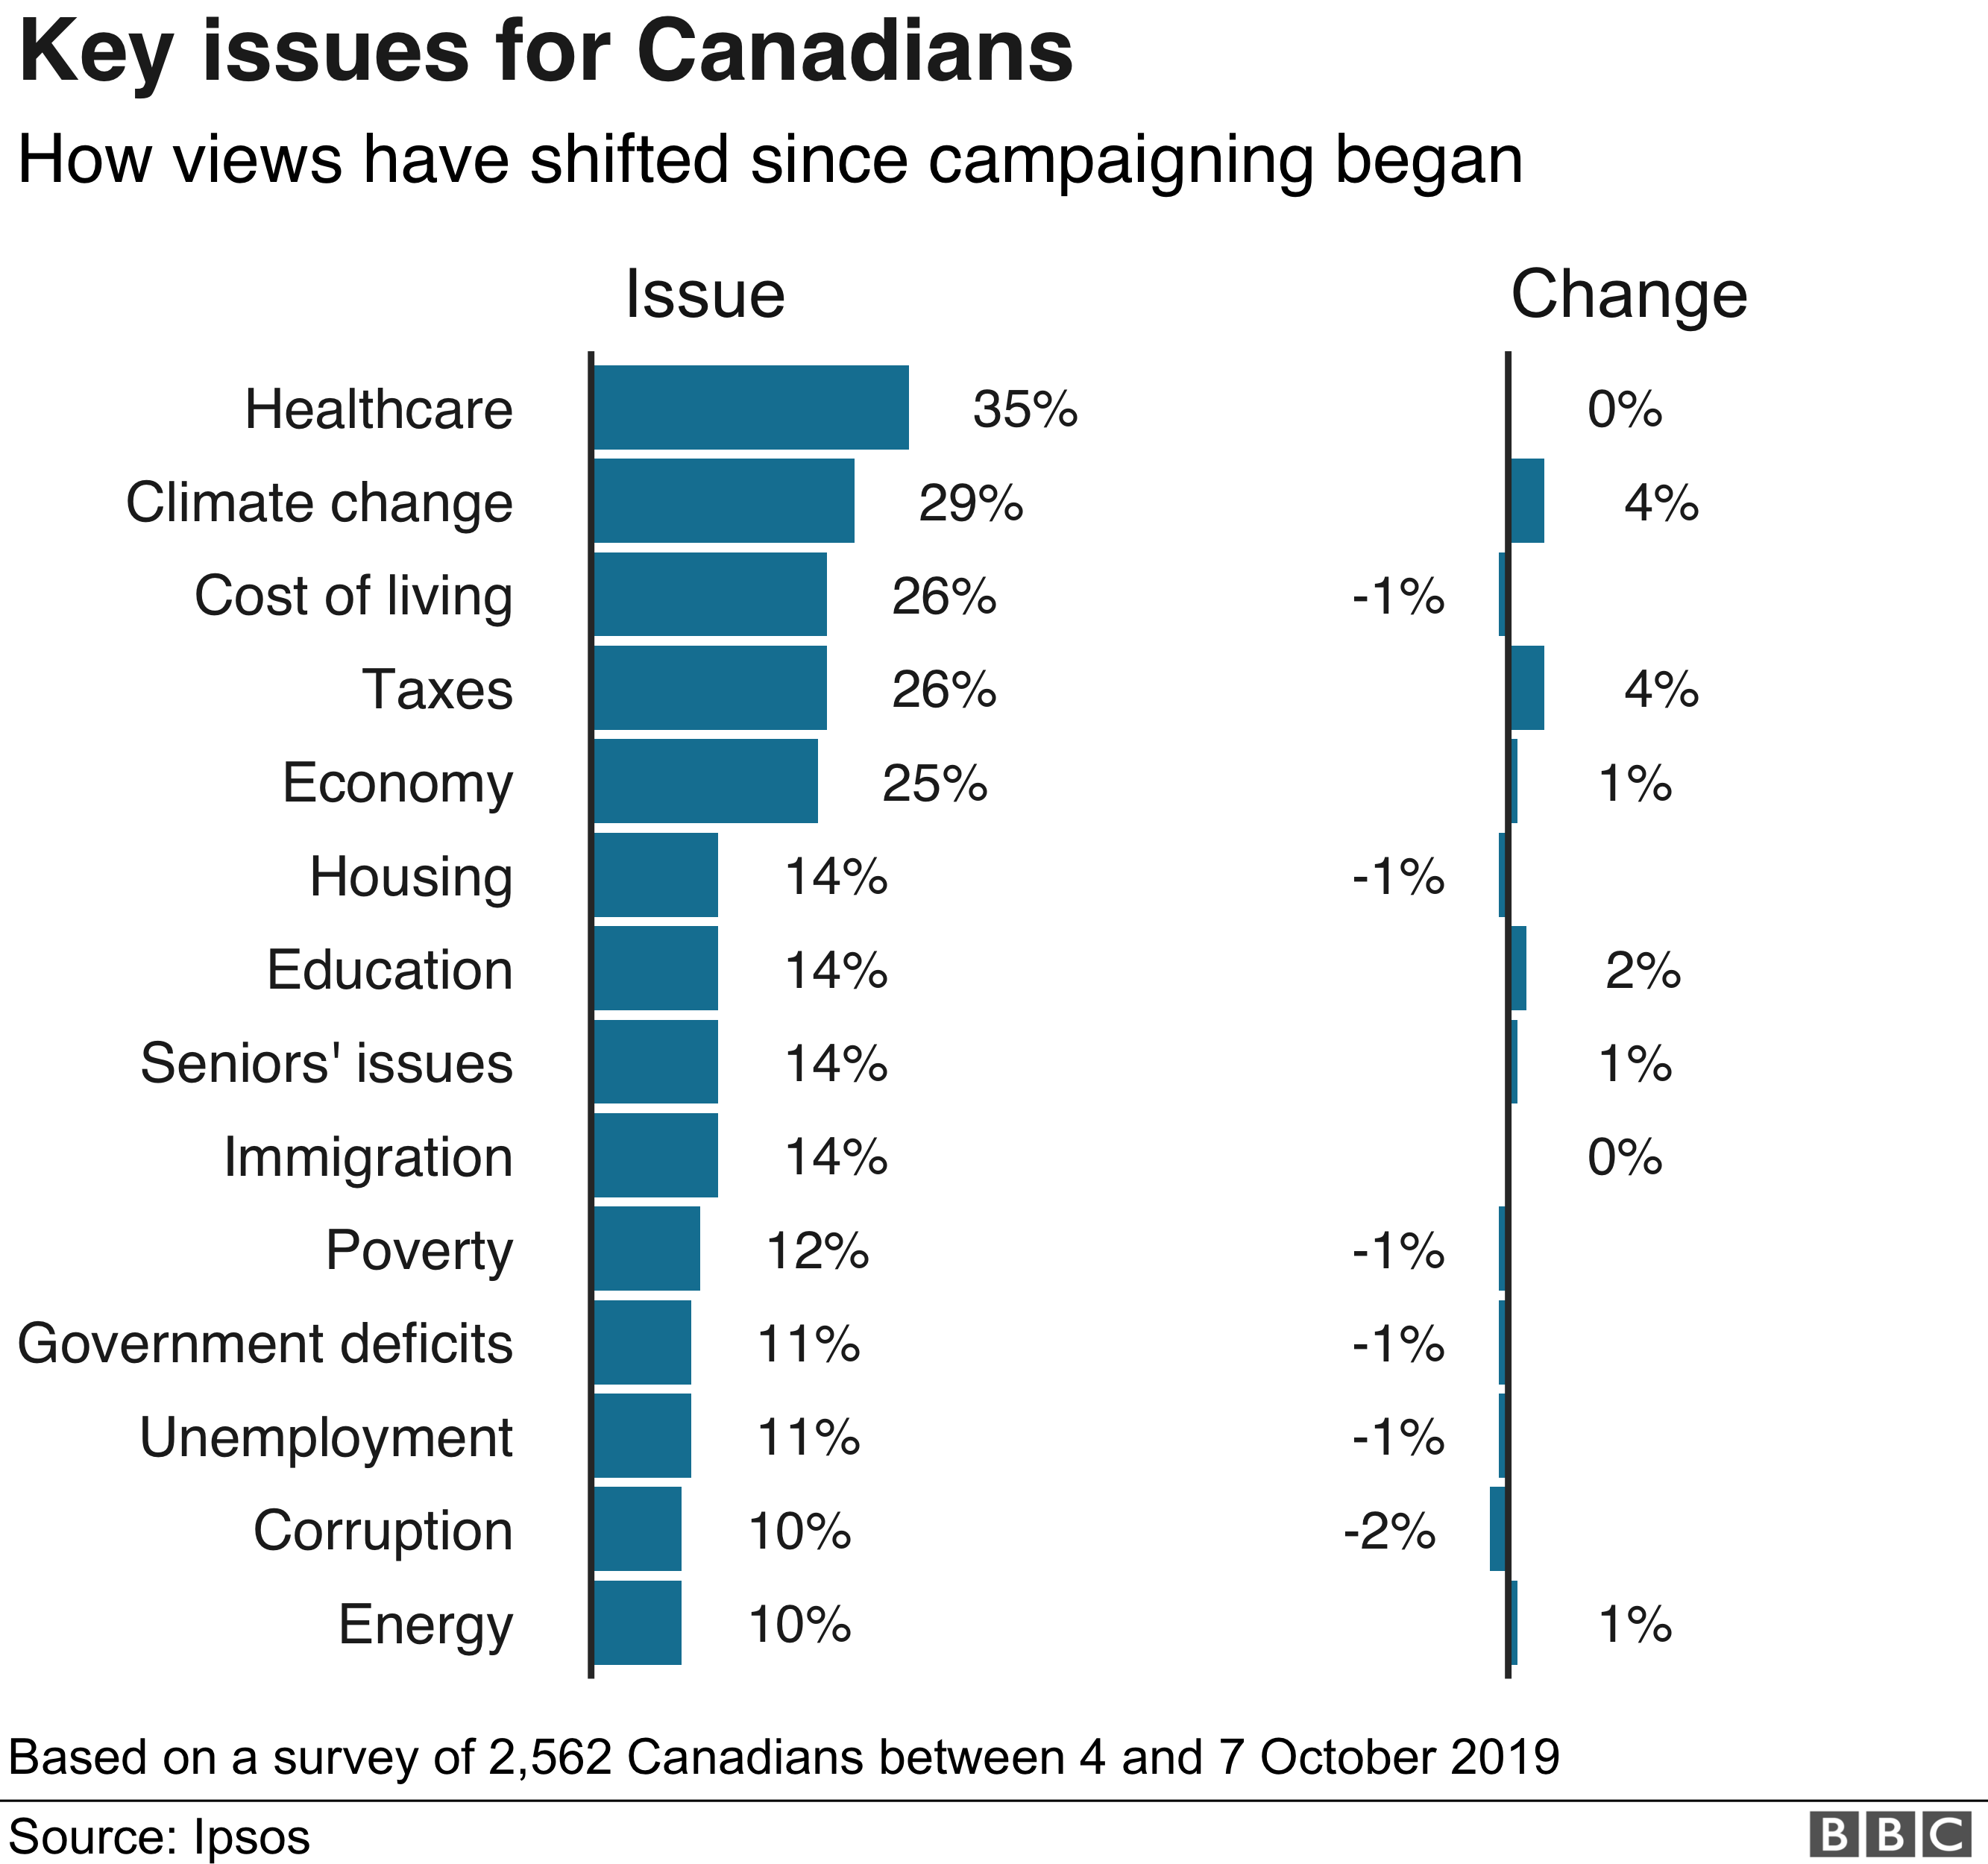 Healthcare and Climate change were the top two issues for Canadians this election